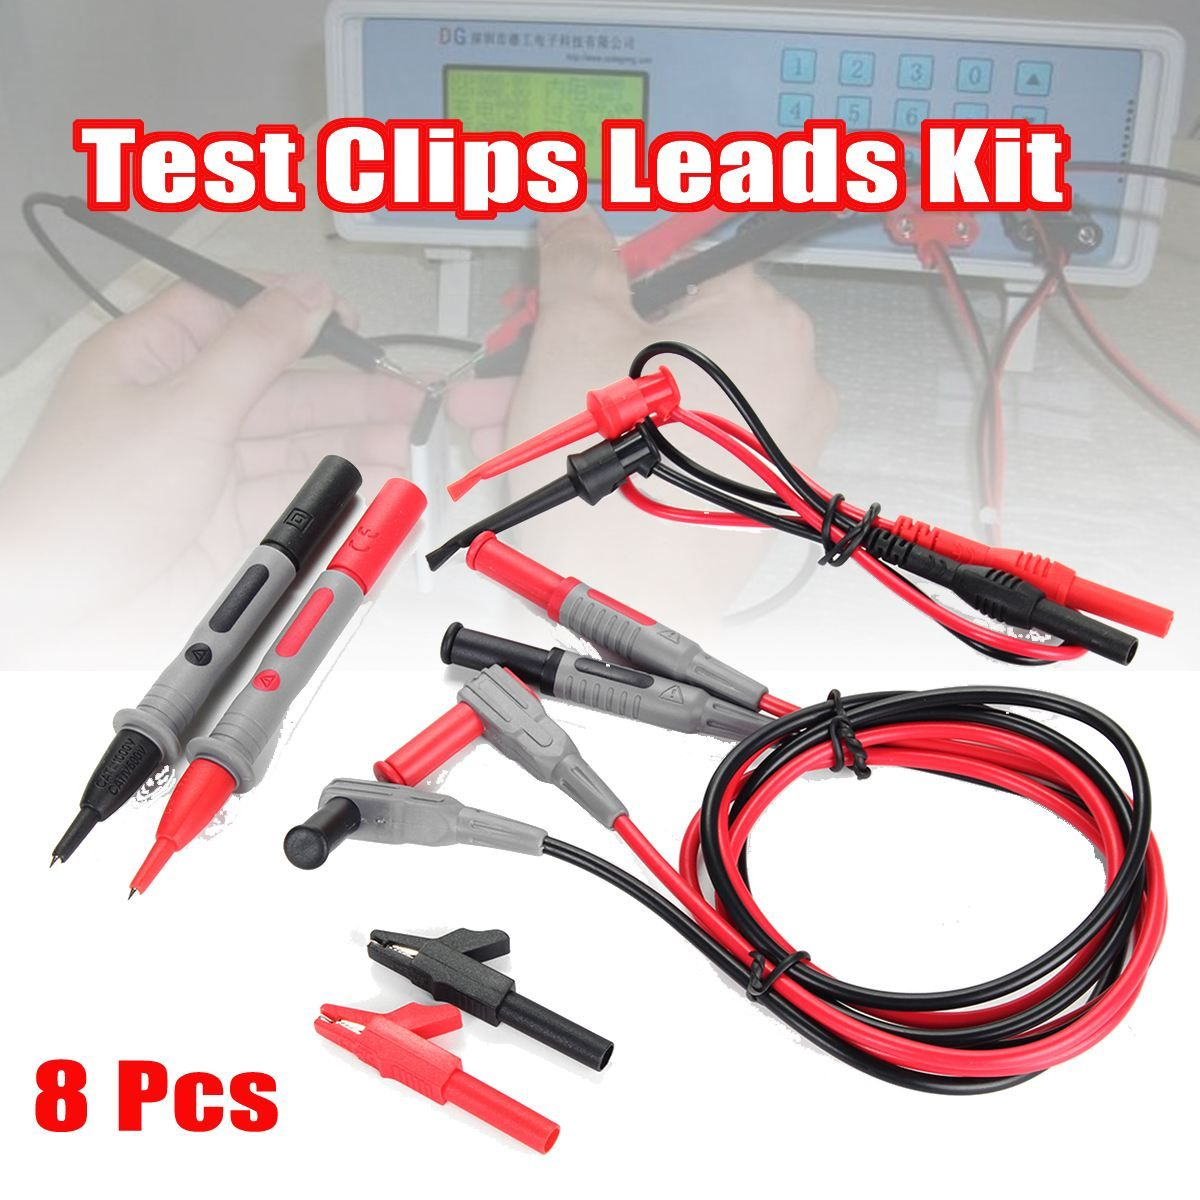 Set Of 8 Electronic Specialties Test Clips Leads Kit Banana Tester Probe Kit For Fluke Multimeter